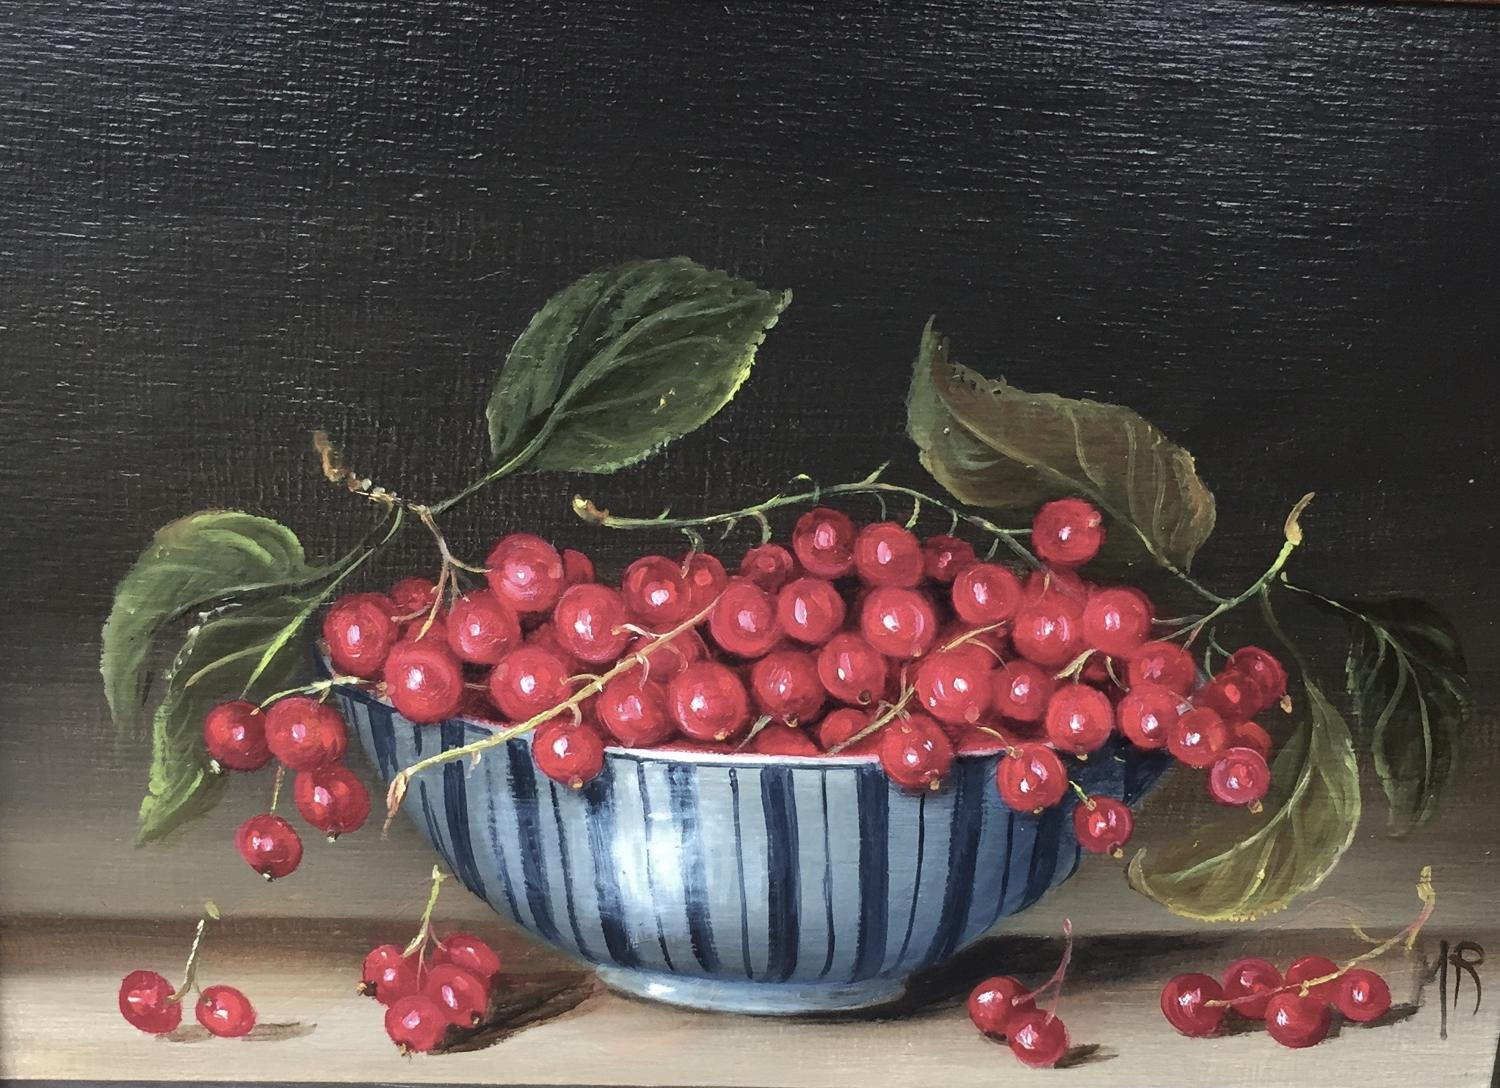 Oil painting of a bowl of red currants